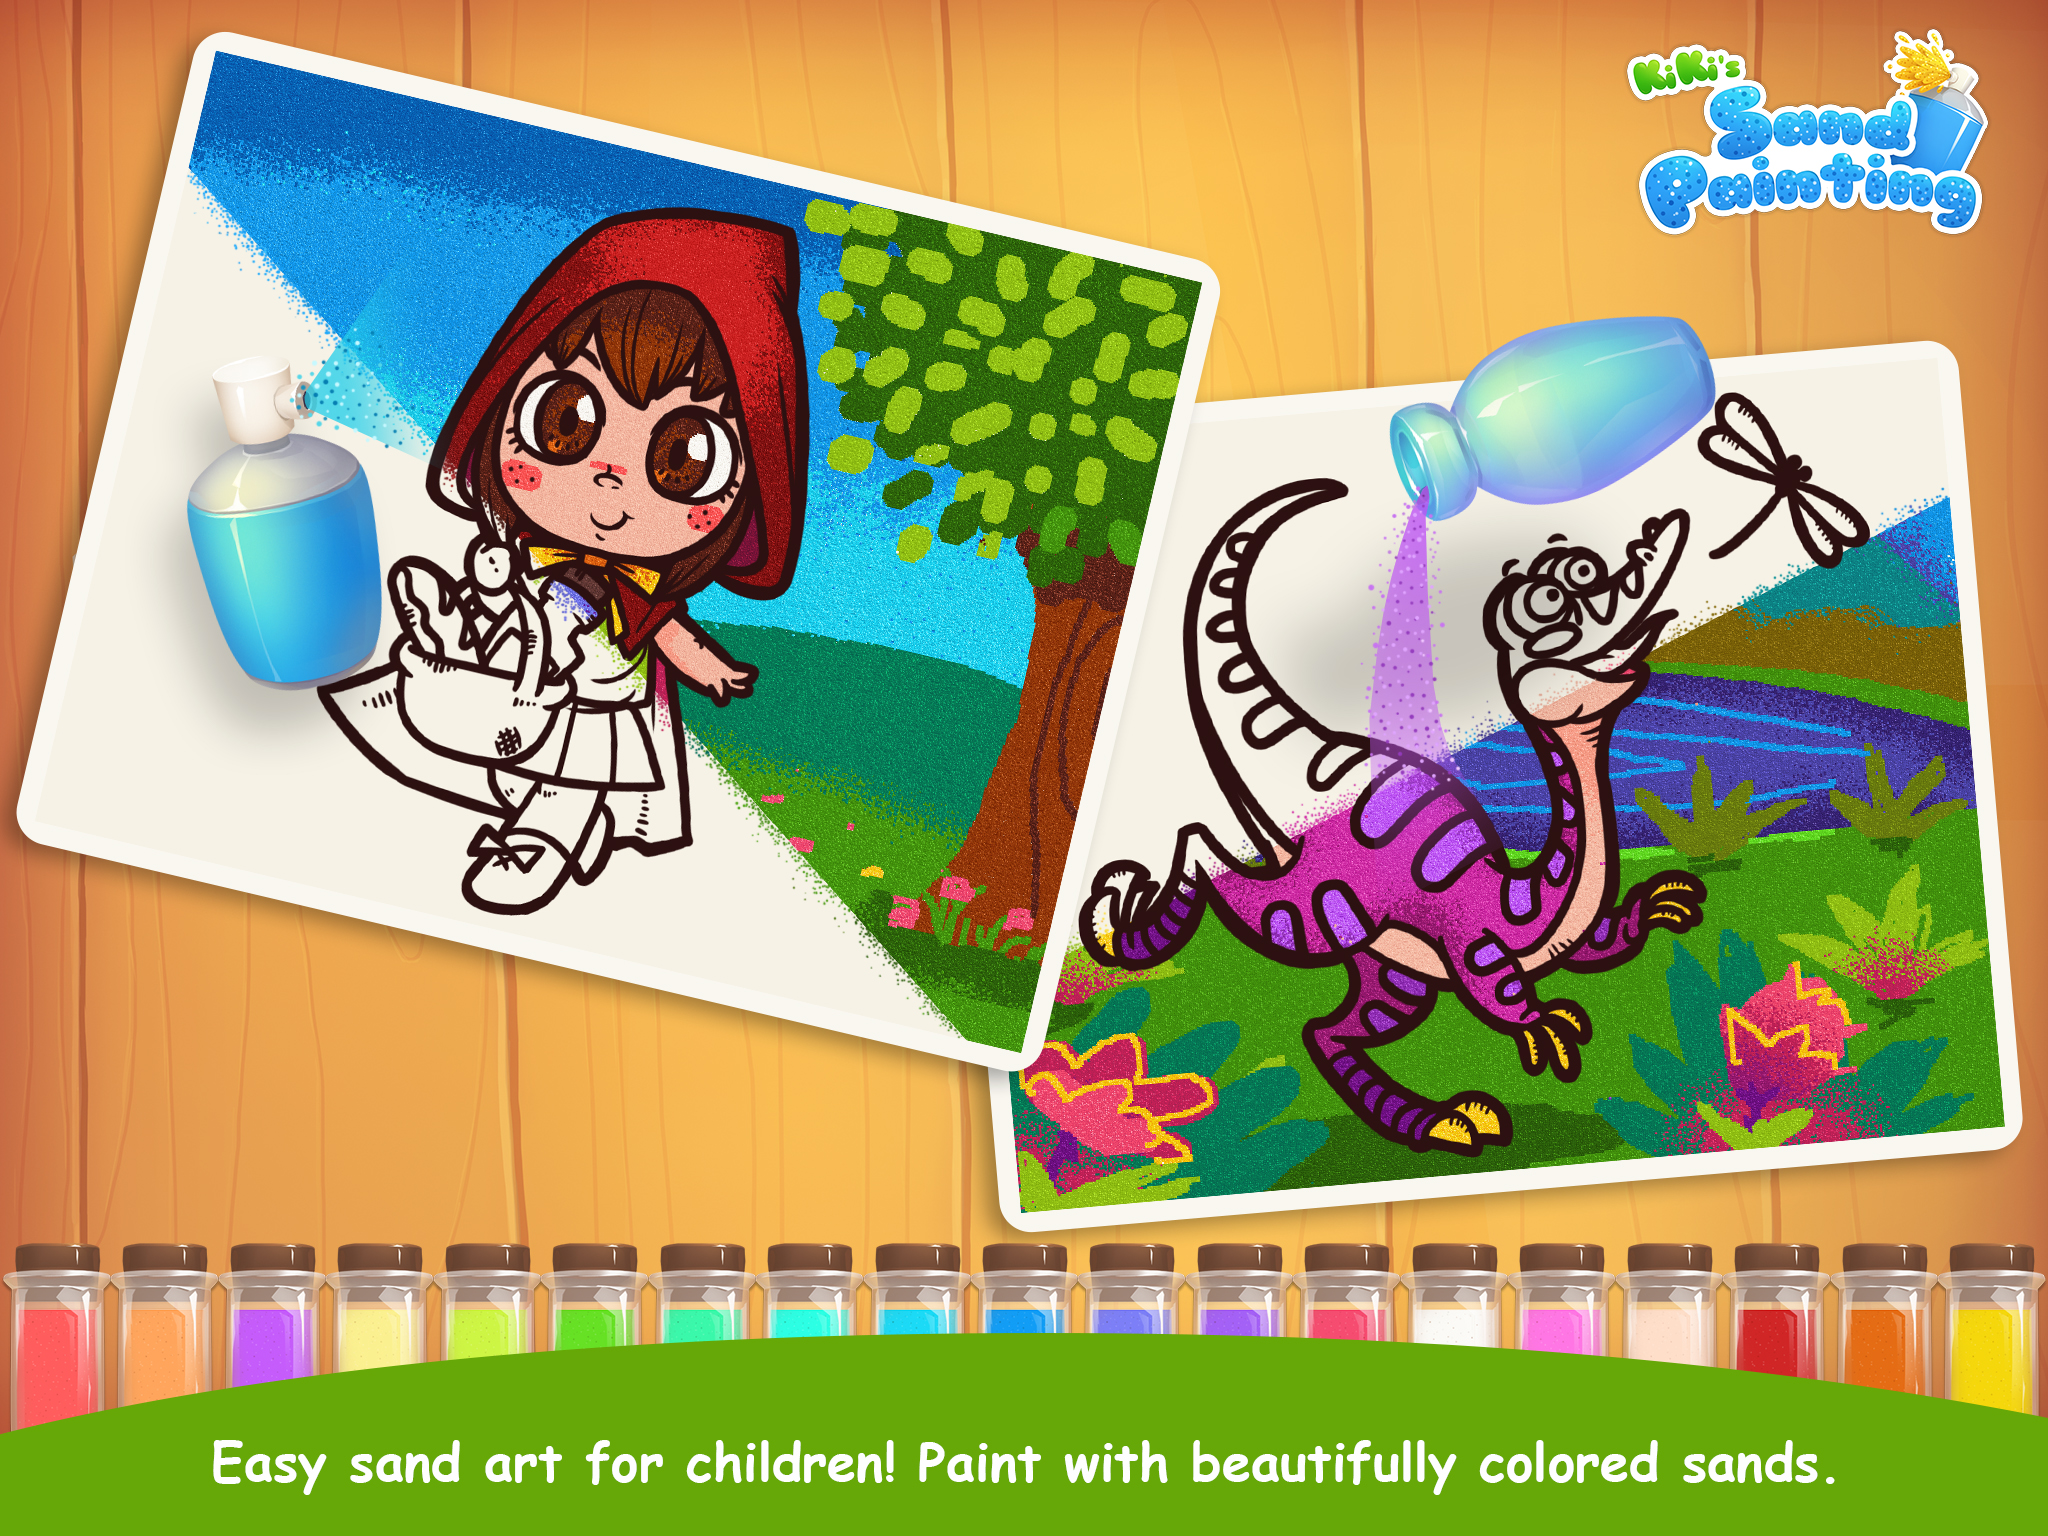 KiKi's Sand Painting Released Free Version 1.0 - Kid's Sand Art on iPad Image